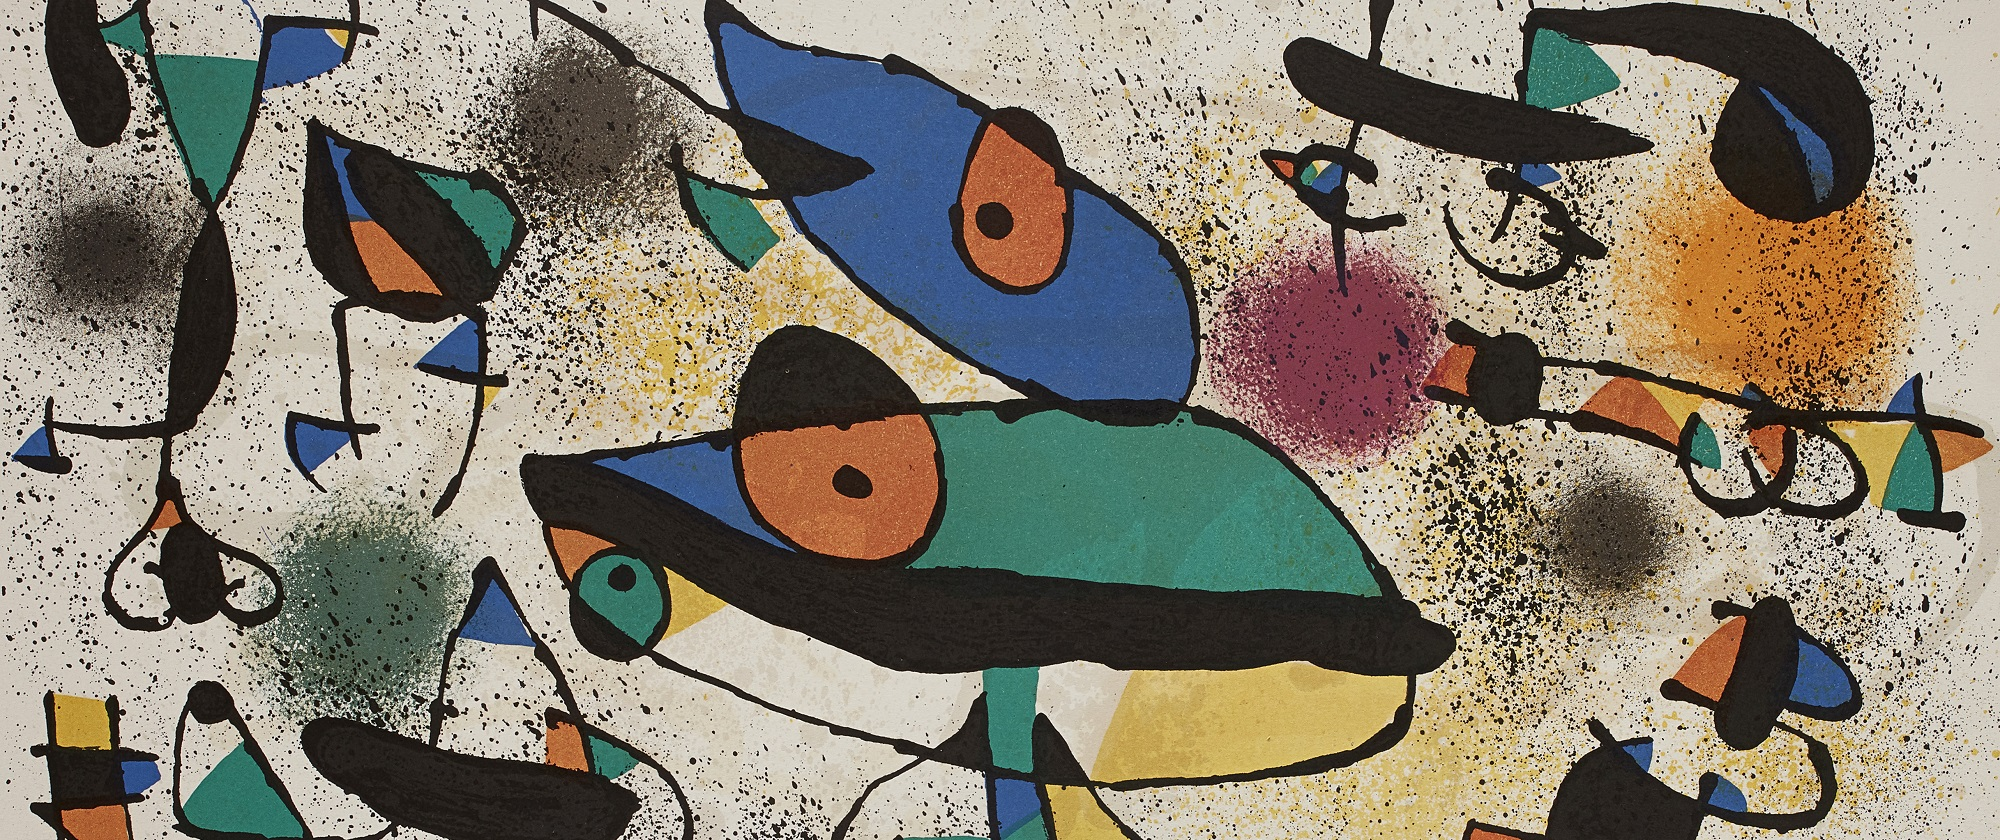 Lithographic Works of Joan Miró